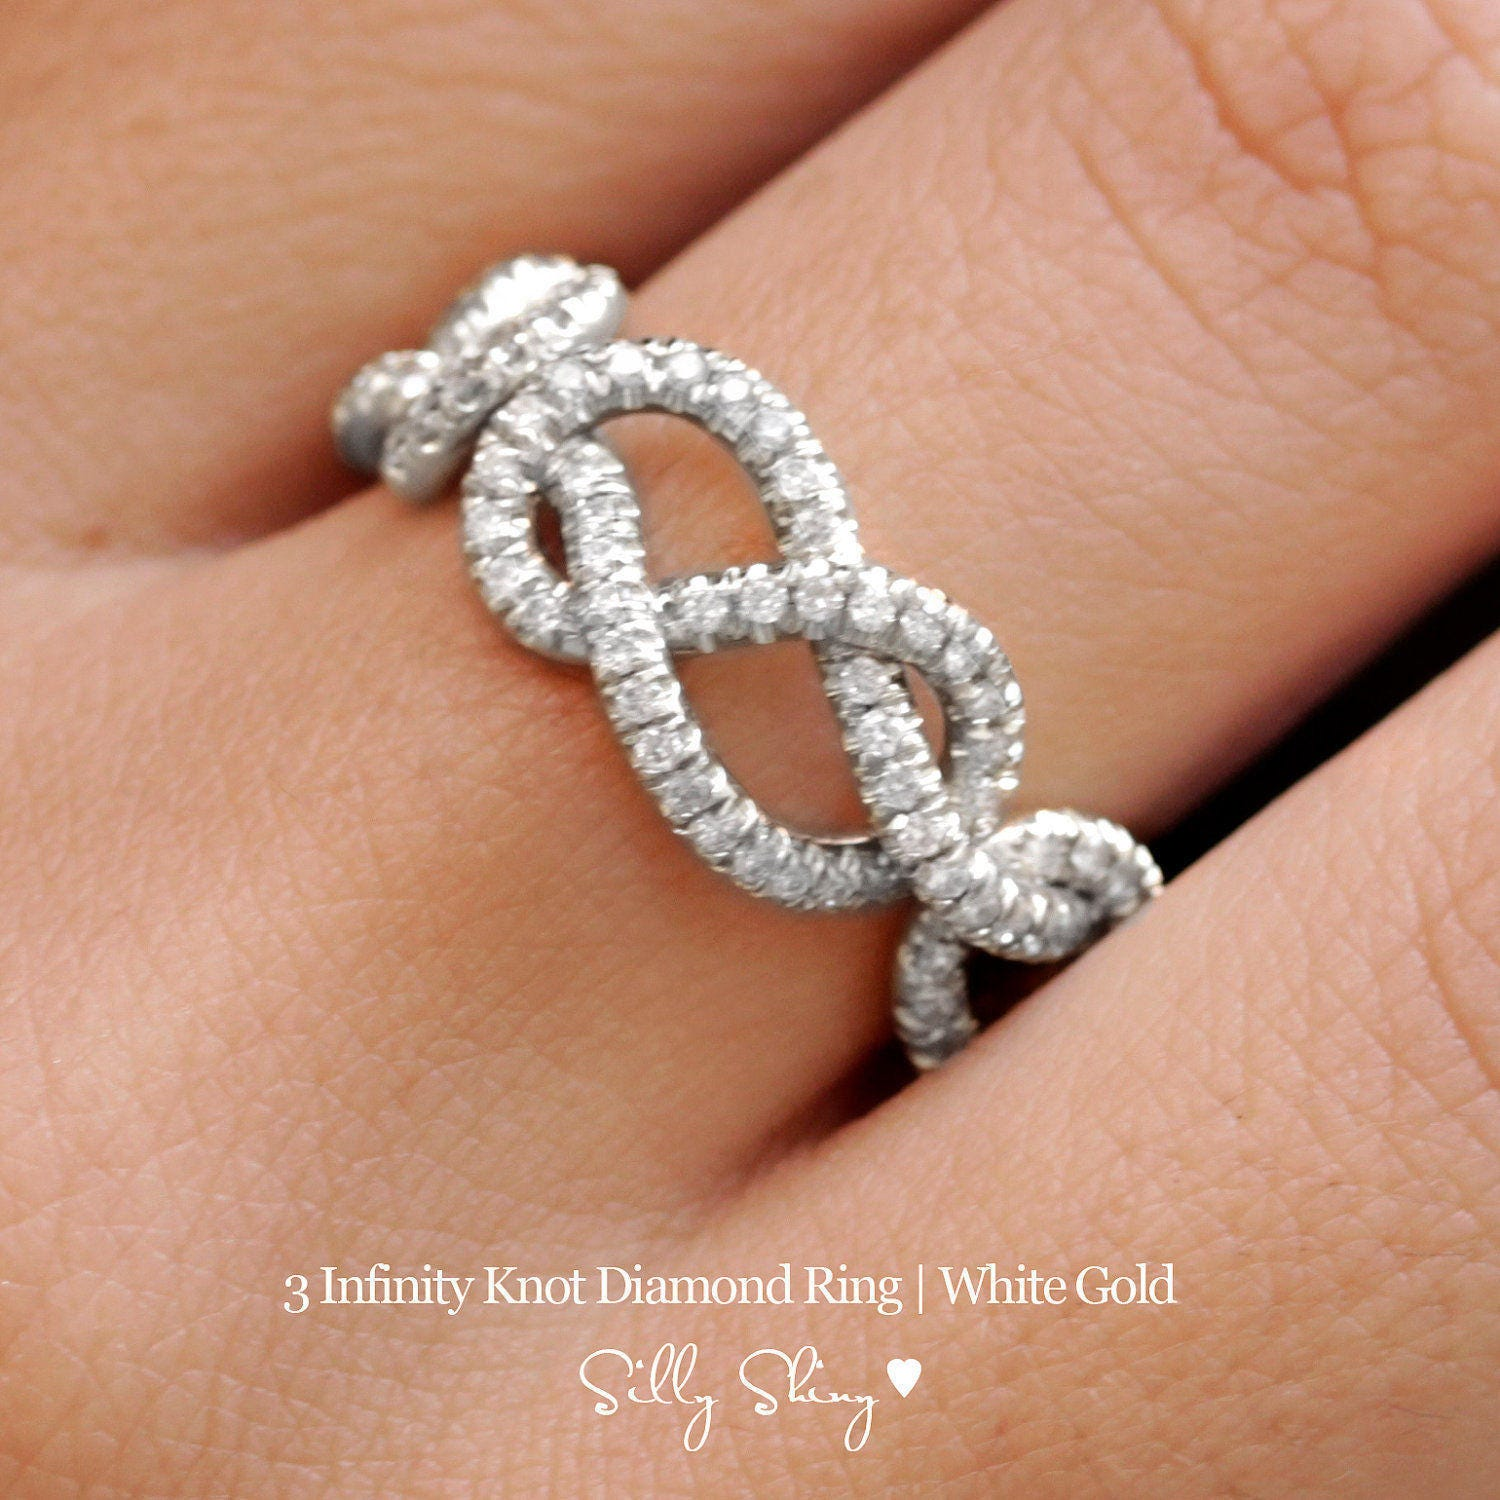 gold wedding band double infinity knot infinity wedding band Triple Infinity Knot Ring 0 75 CT Diamond Wedding Band 14K Gold Wedding Ring Cluster Ring Art Deco Ring Infinity Ring